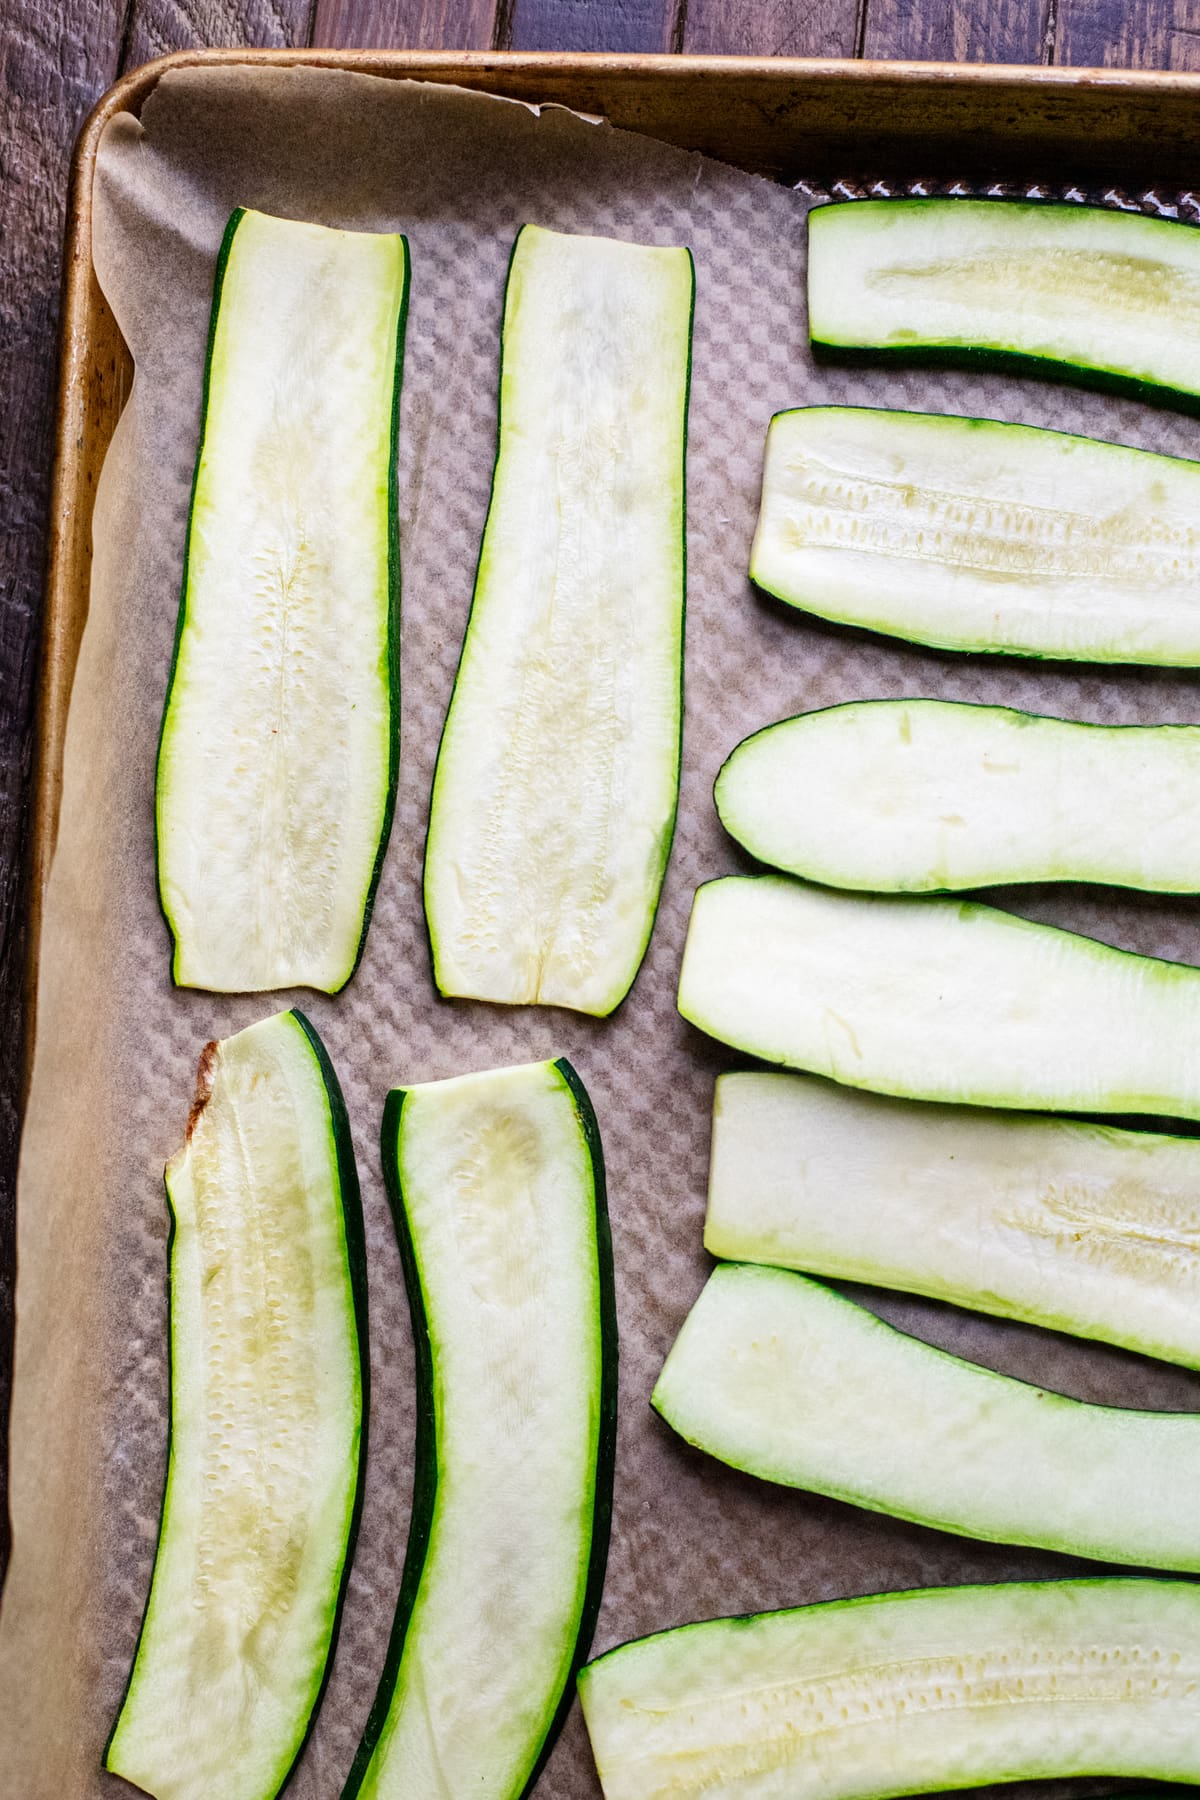 zucchini sliced thin and arranged on baking sheet lined with parchment paper.